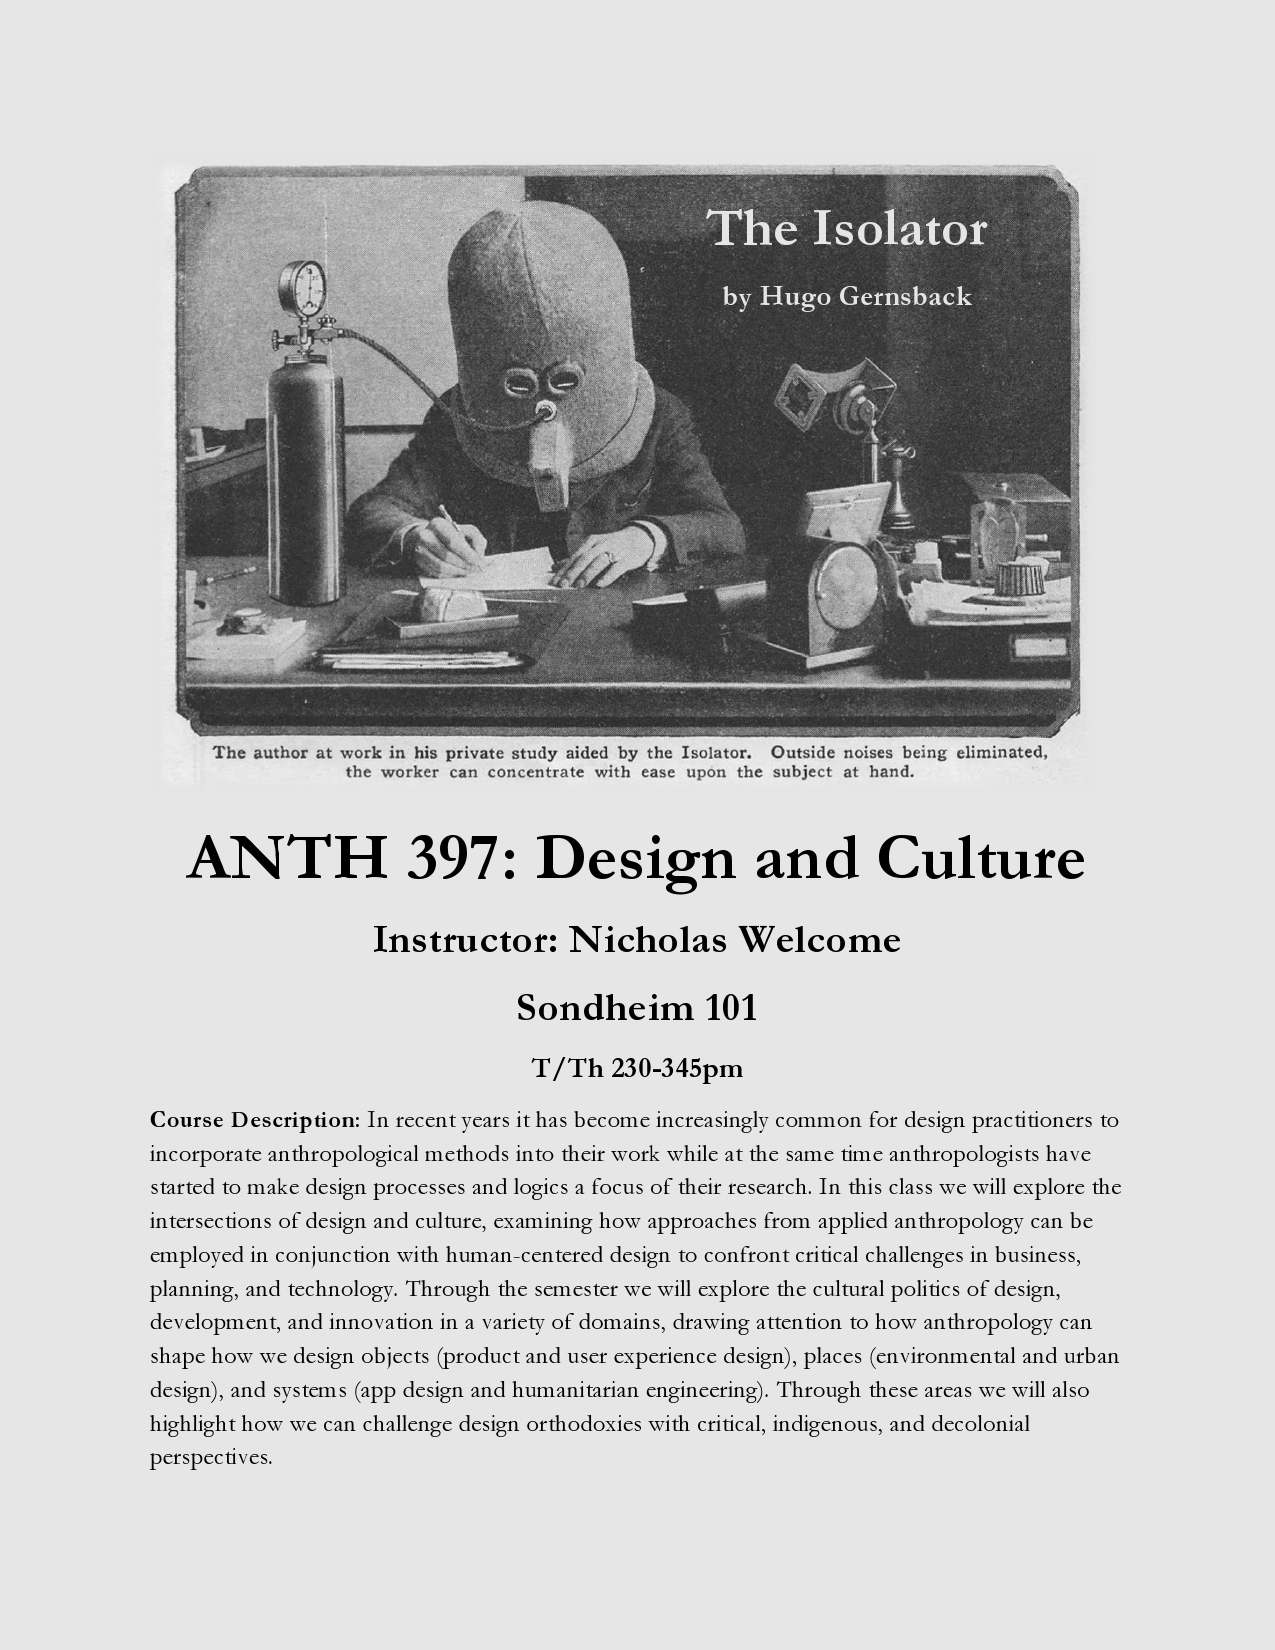 Register for ANTH 397 for Fall 2020!